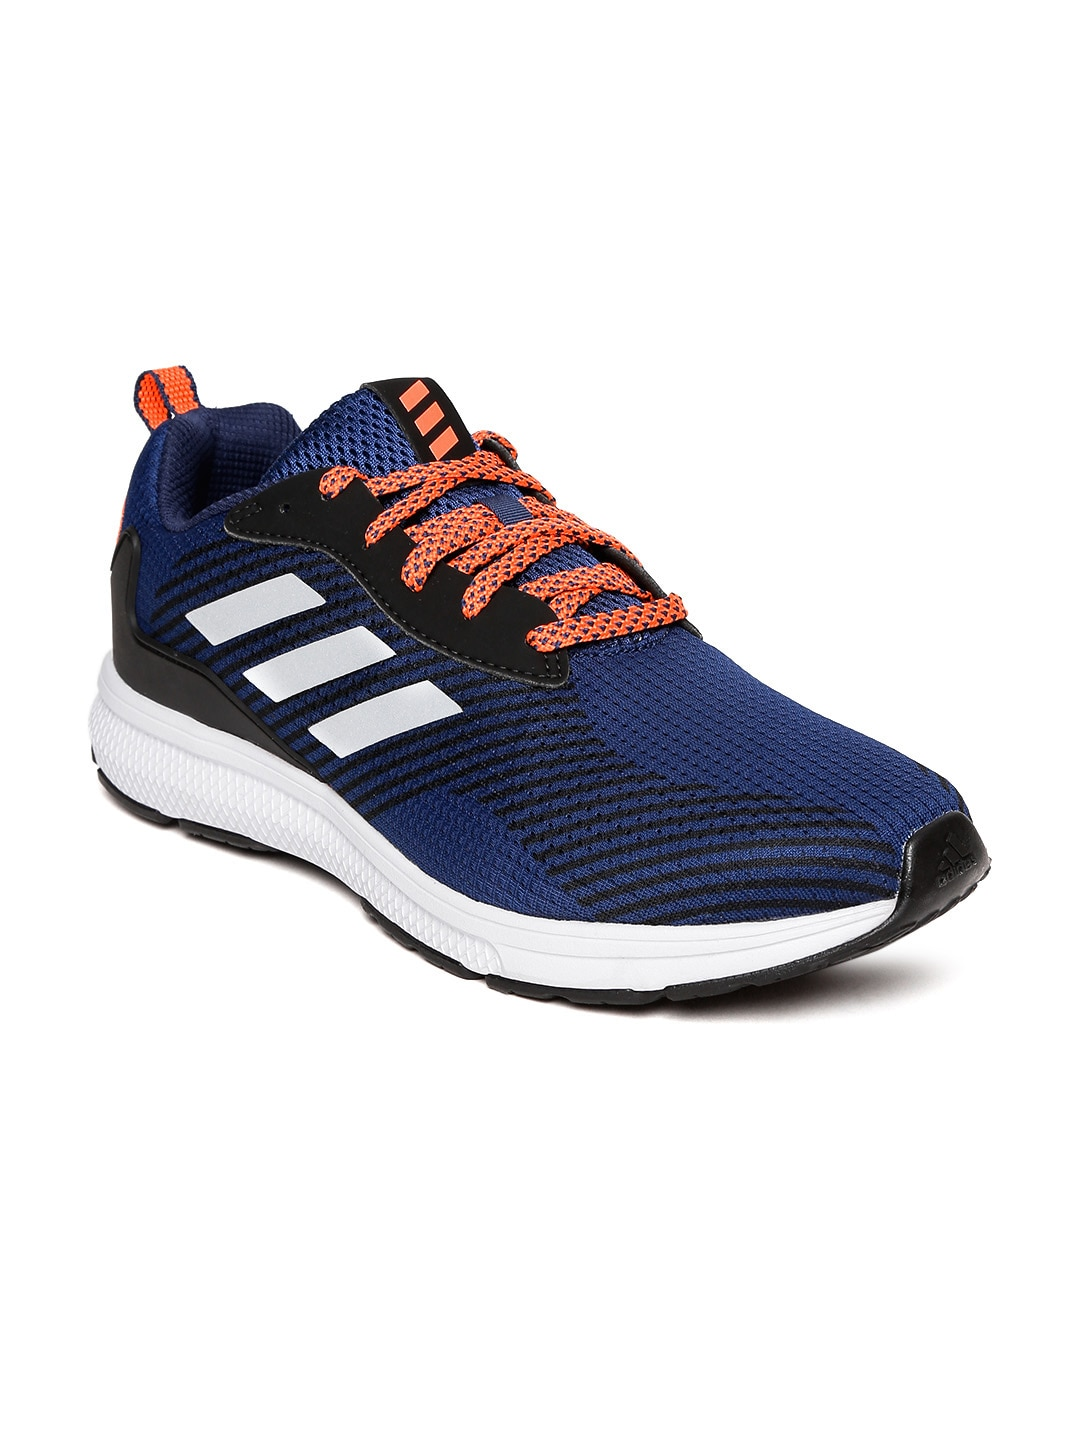 7775847f240c adidas - Exclusive adidas Online Store in India at Myntra